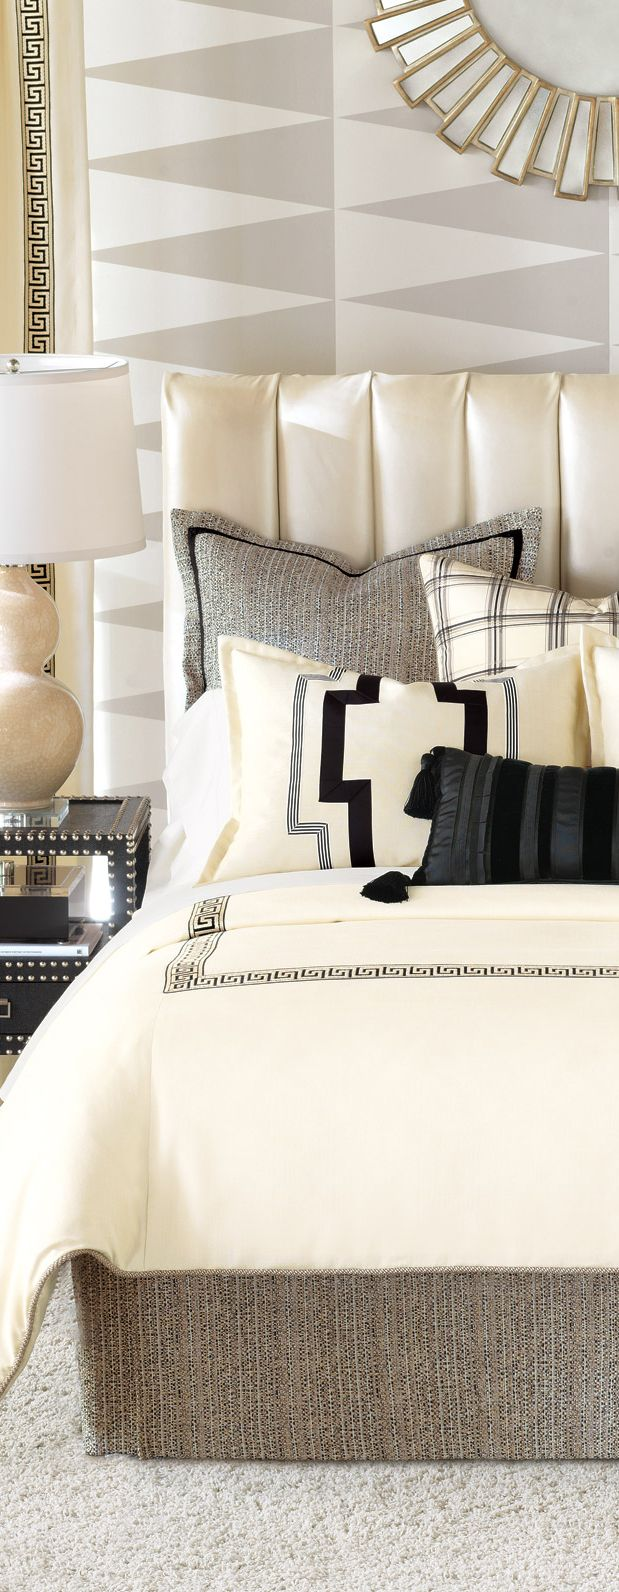 Eastern Accents Abernathy Bedding Eastern Accents Pinterest Bedrooms Bedding Sets And